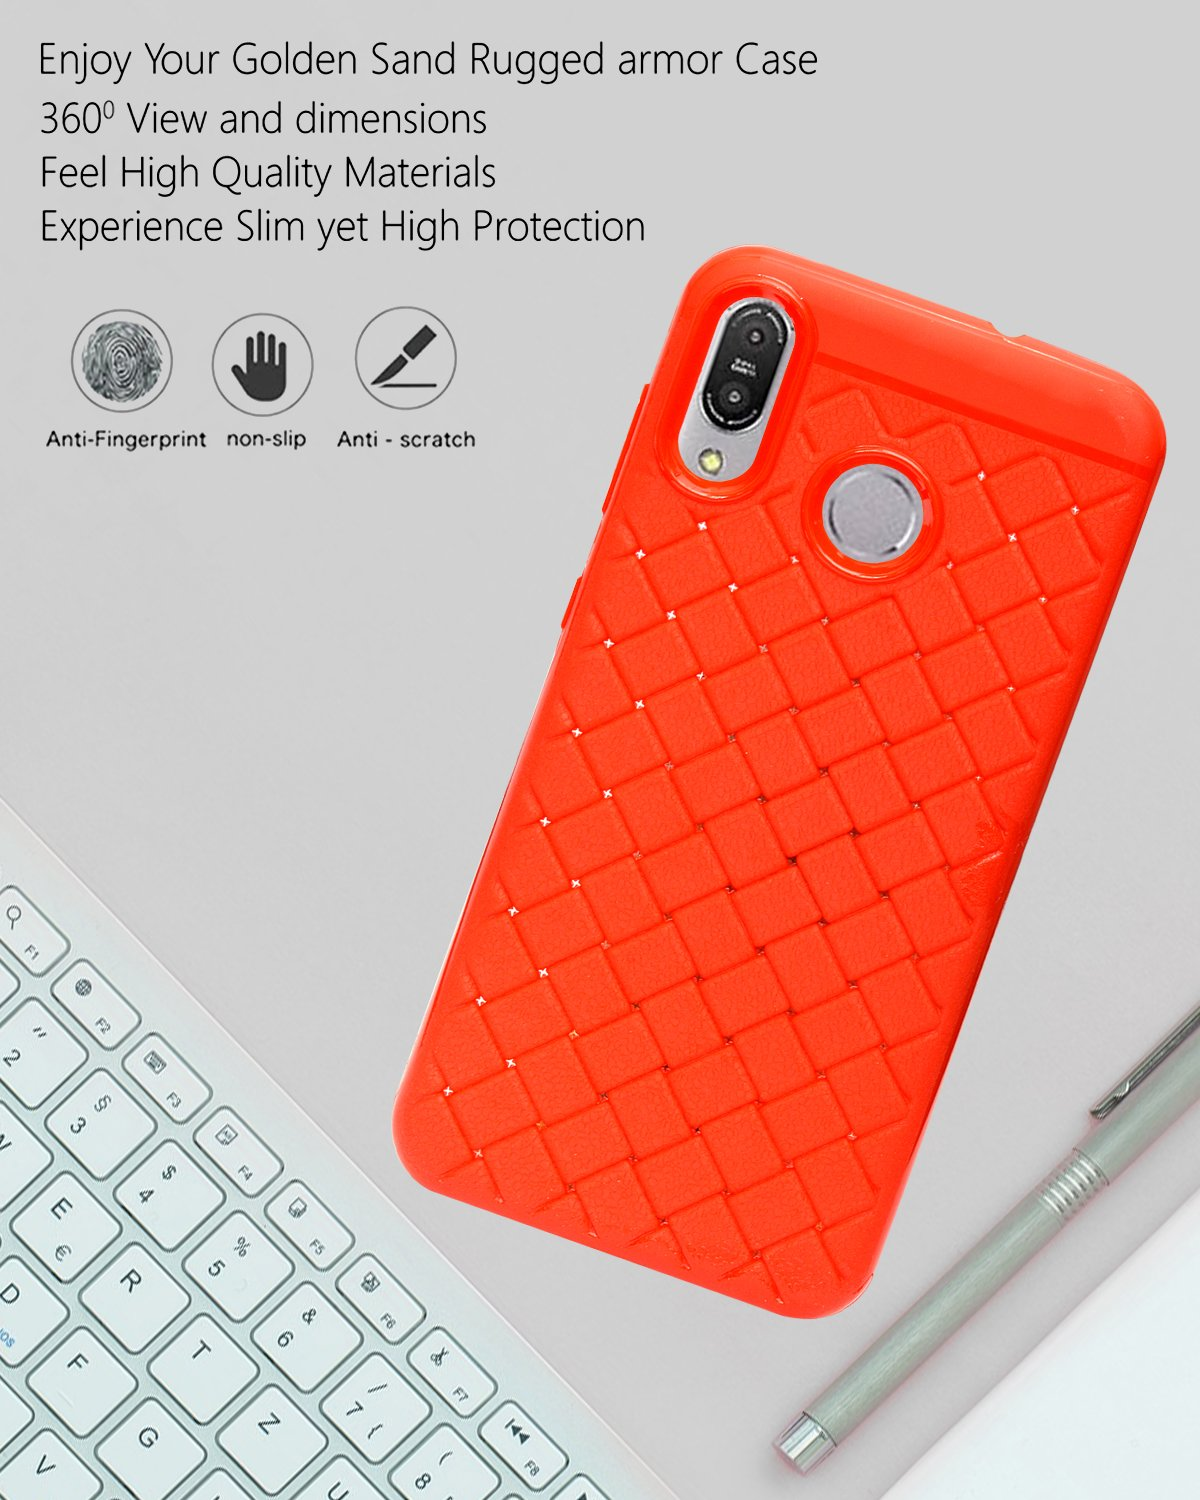 Asus Zenfone Max (M1) ZB555KL Texture Pattern Soft Cusion Padding Case Back Cover - Red